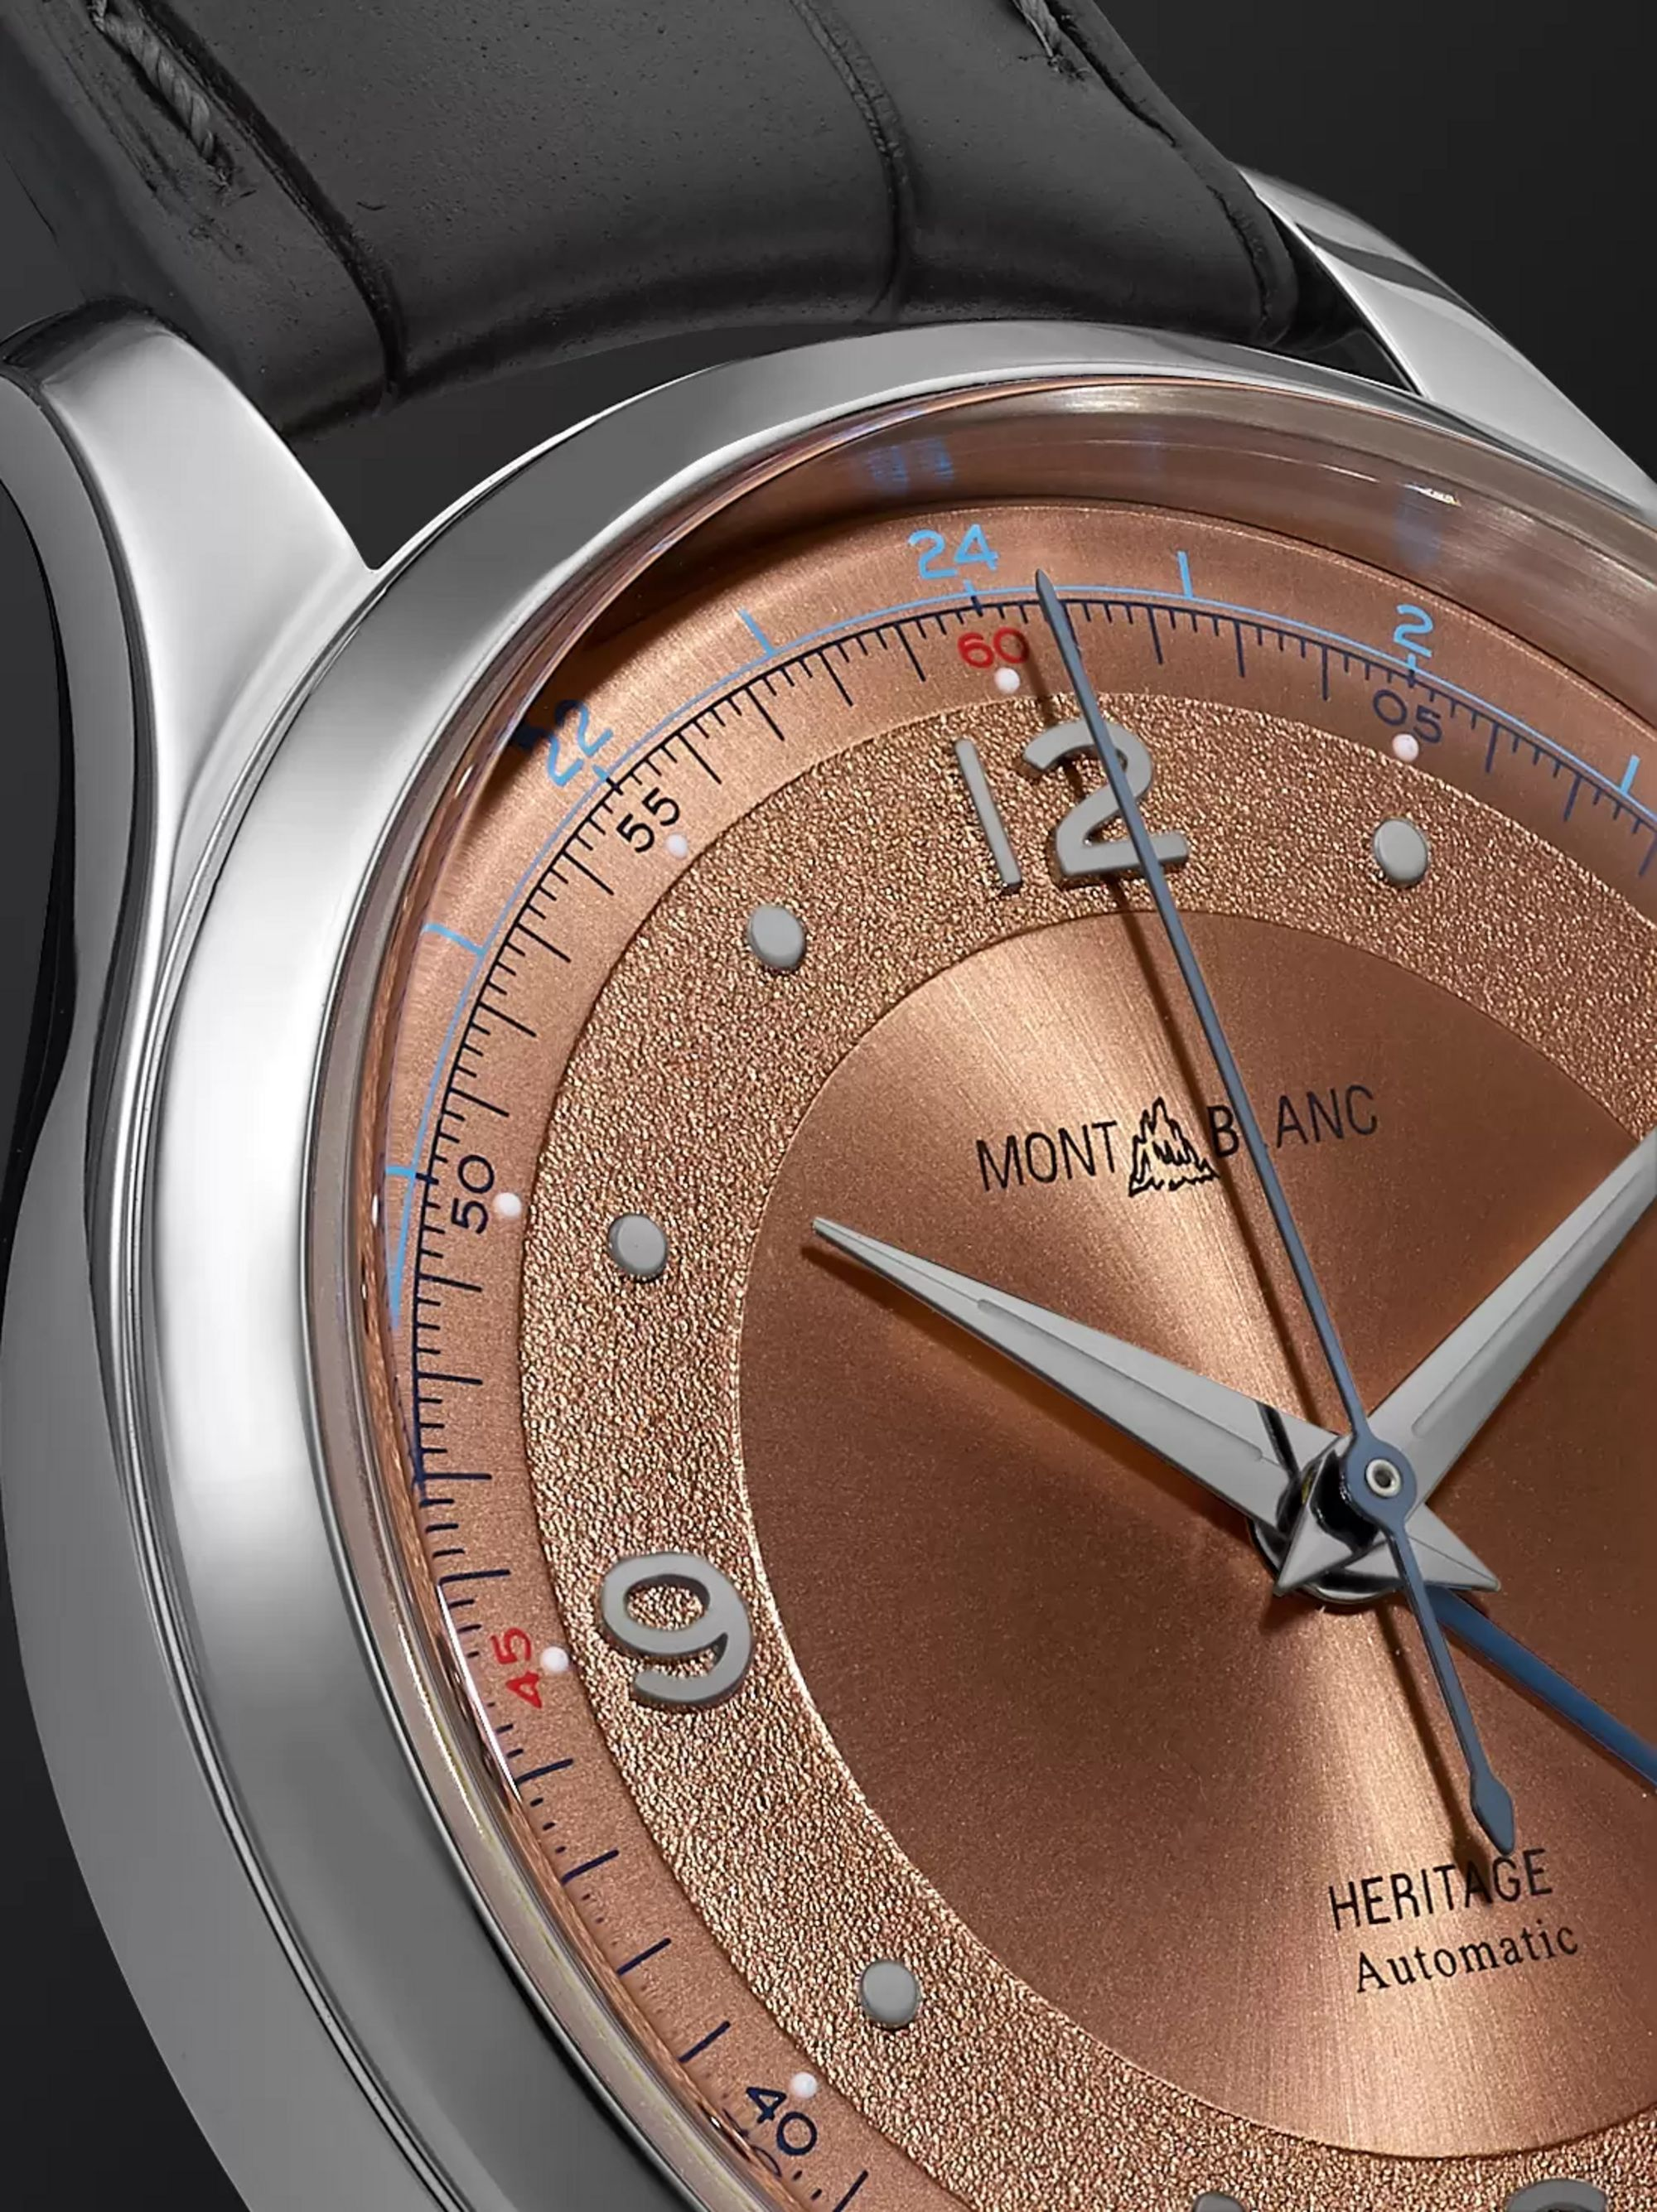 Montblanc Heritage GMT Automatic 40mm Stainless Steel and Alligator Watch, Ref. No. 119950